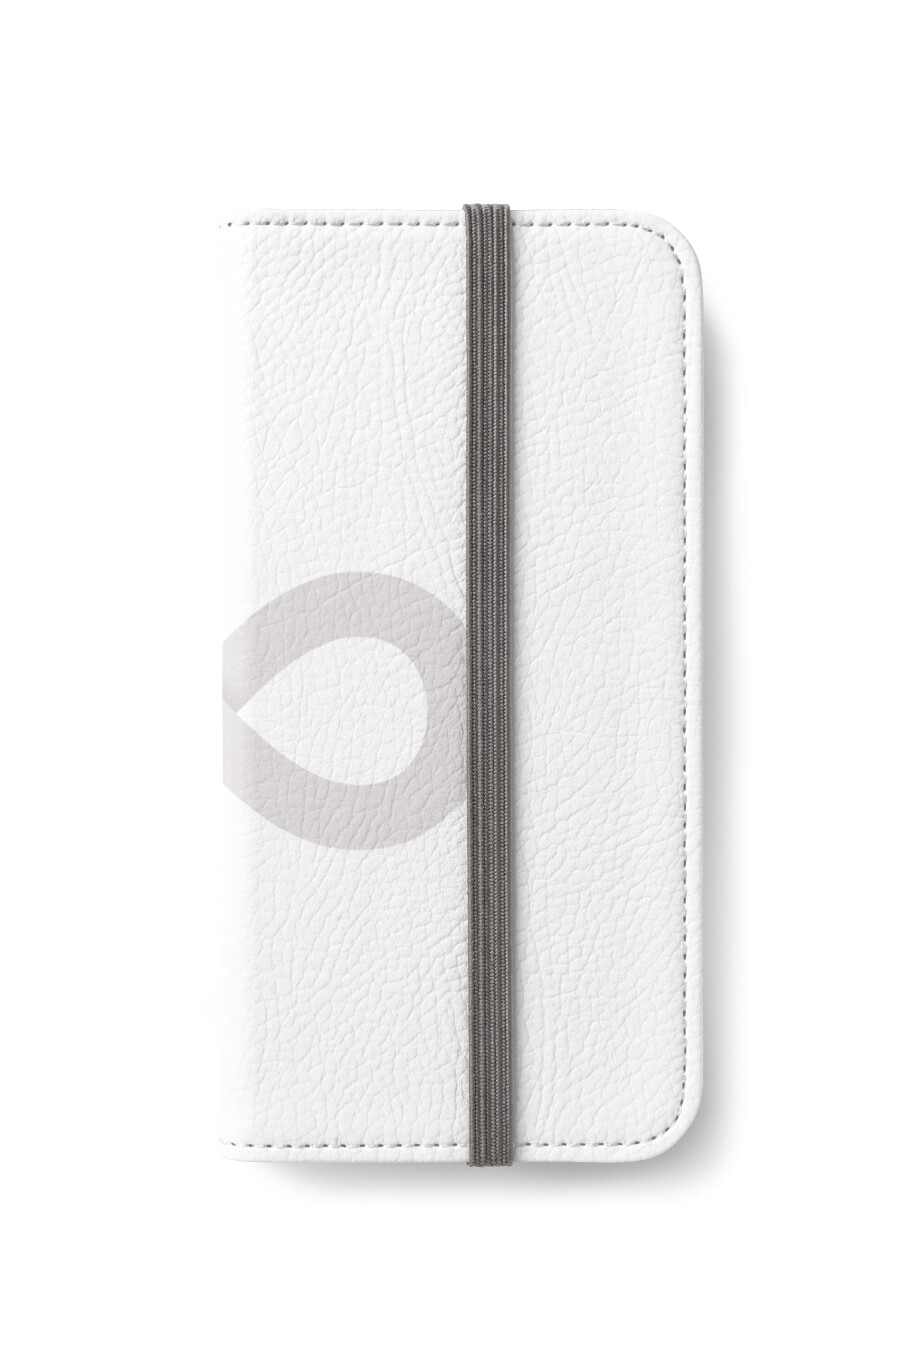 The 100 infinity symbol iphone wallets by thezdesign redbubble the 100 infinity symbol by thezdesign biocorpaavc Choice Image